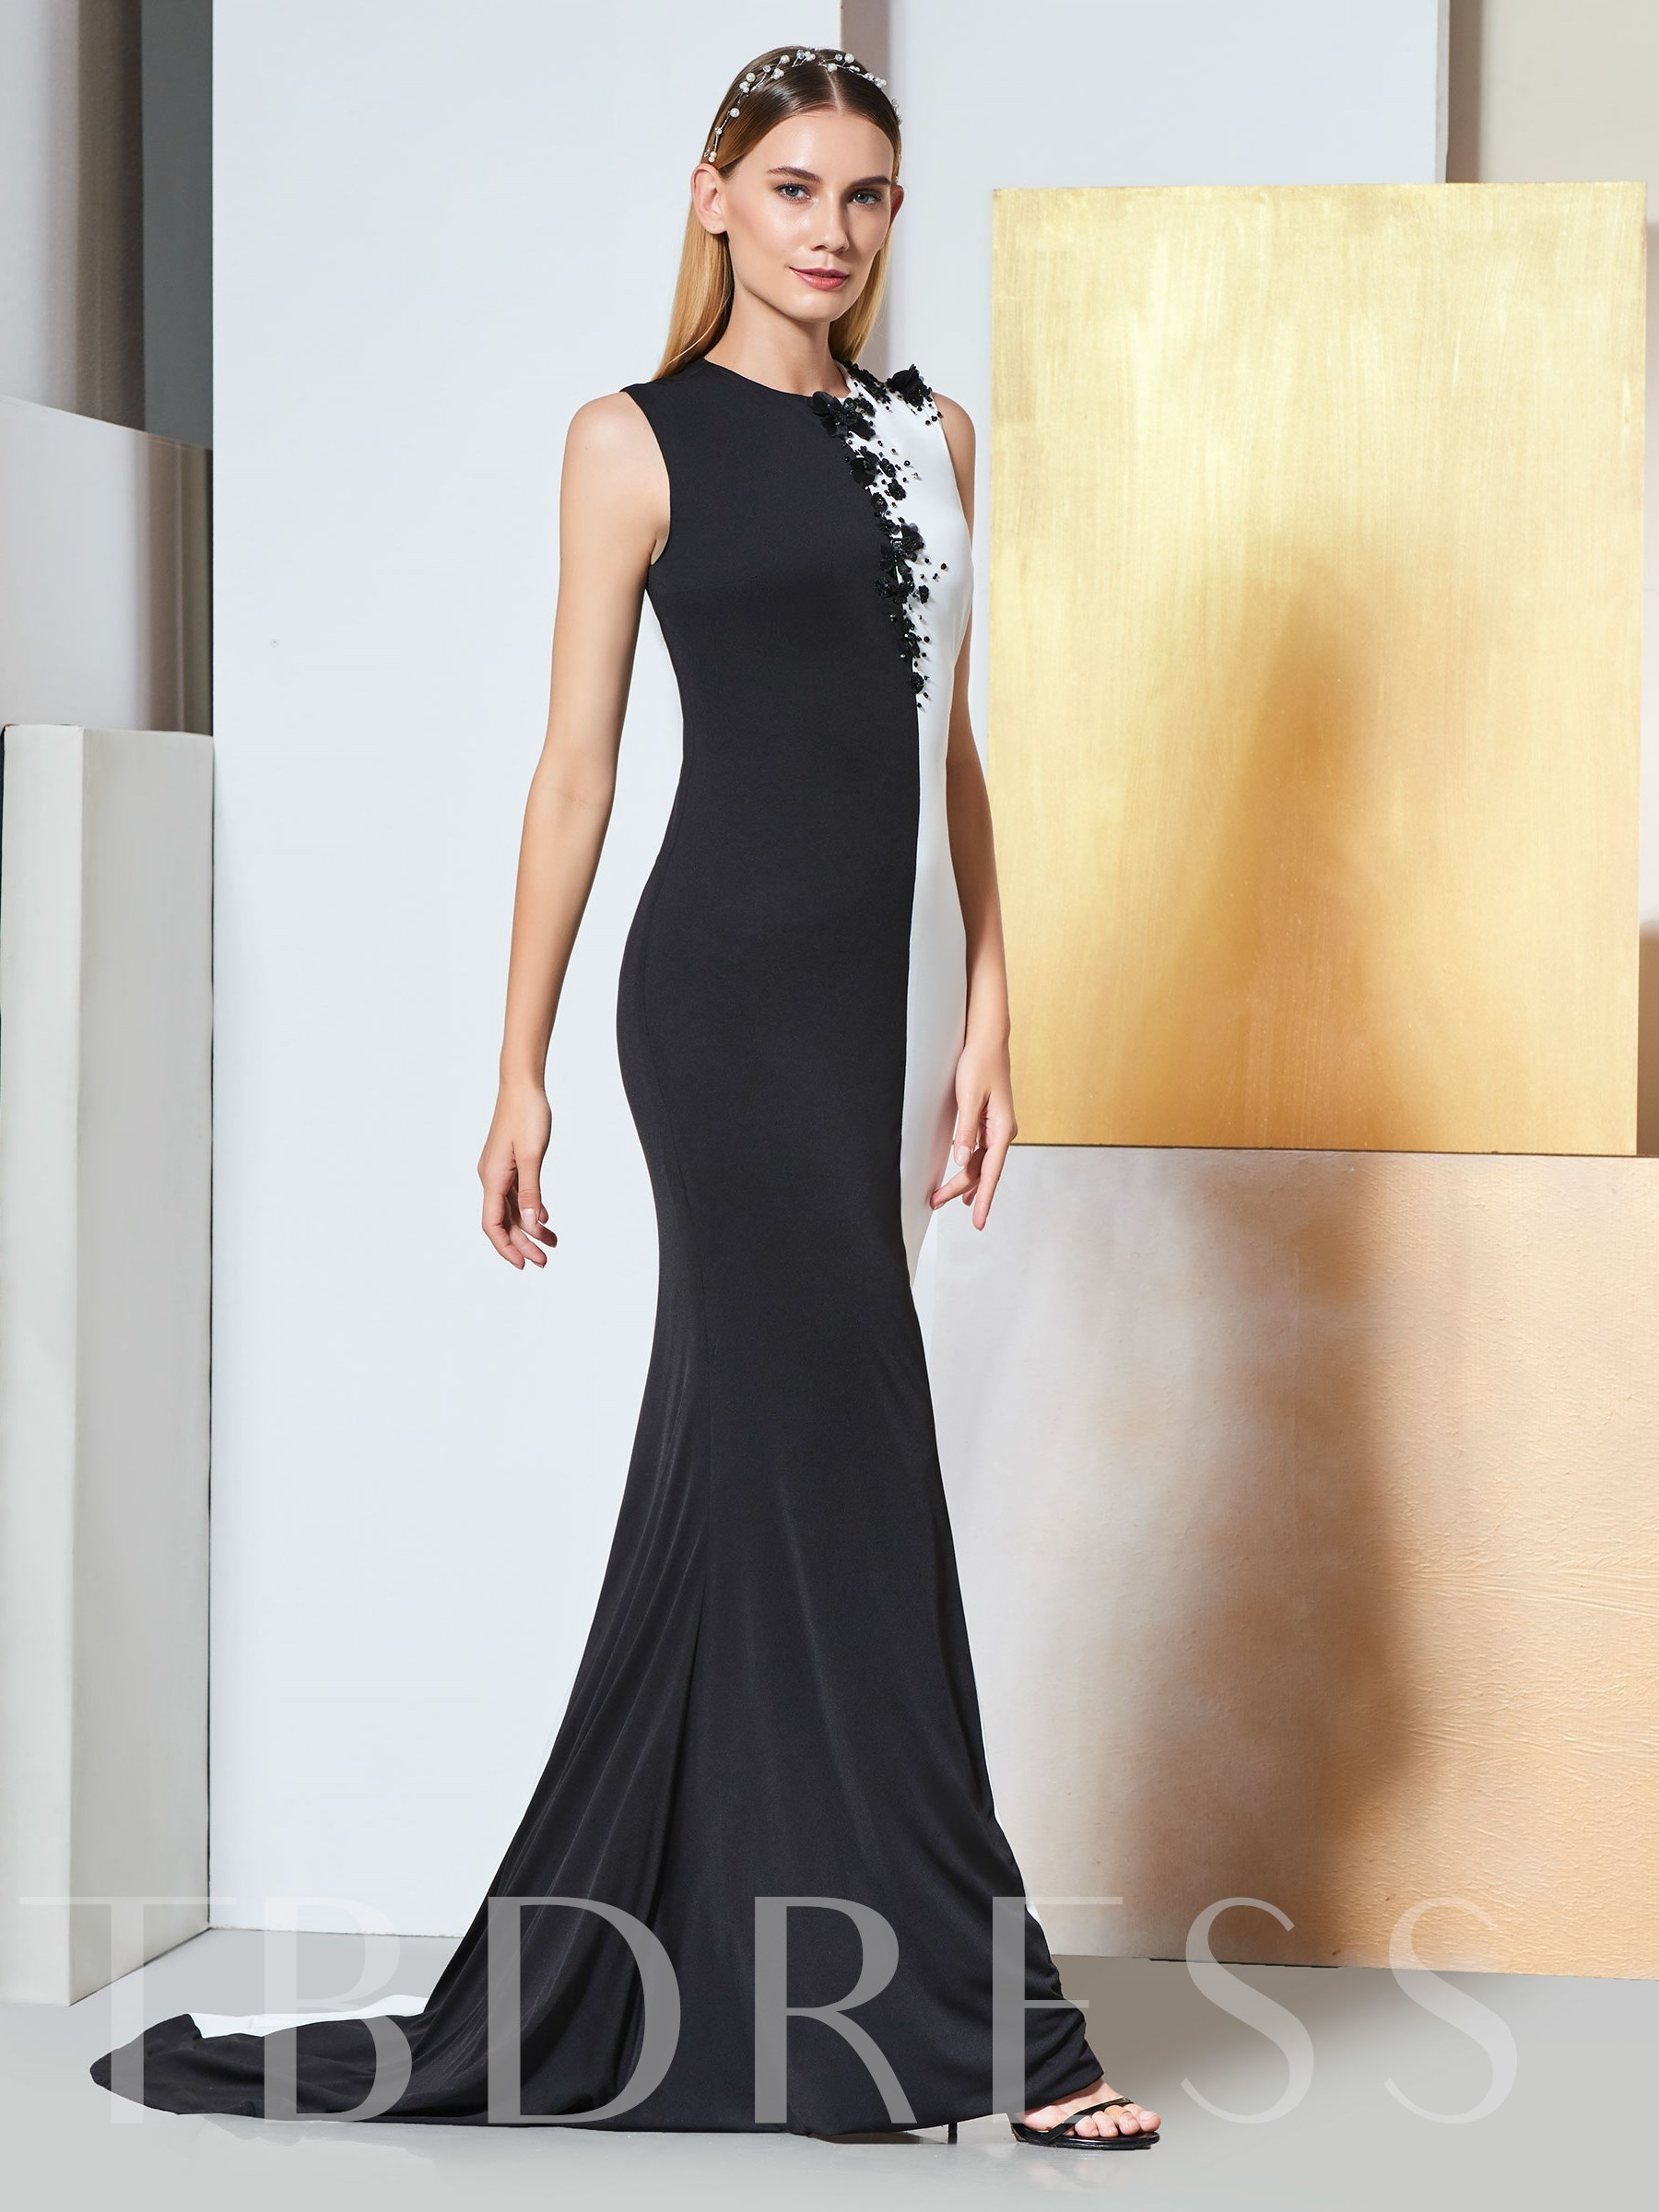 Buy Scoop Appliques Sheath Beaded Evening Dress, Spring,Summer,Fall,Winter, 13334952 for $132.29 in TBDress store